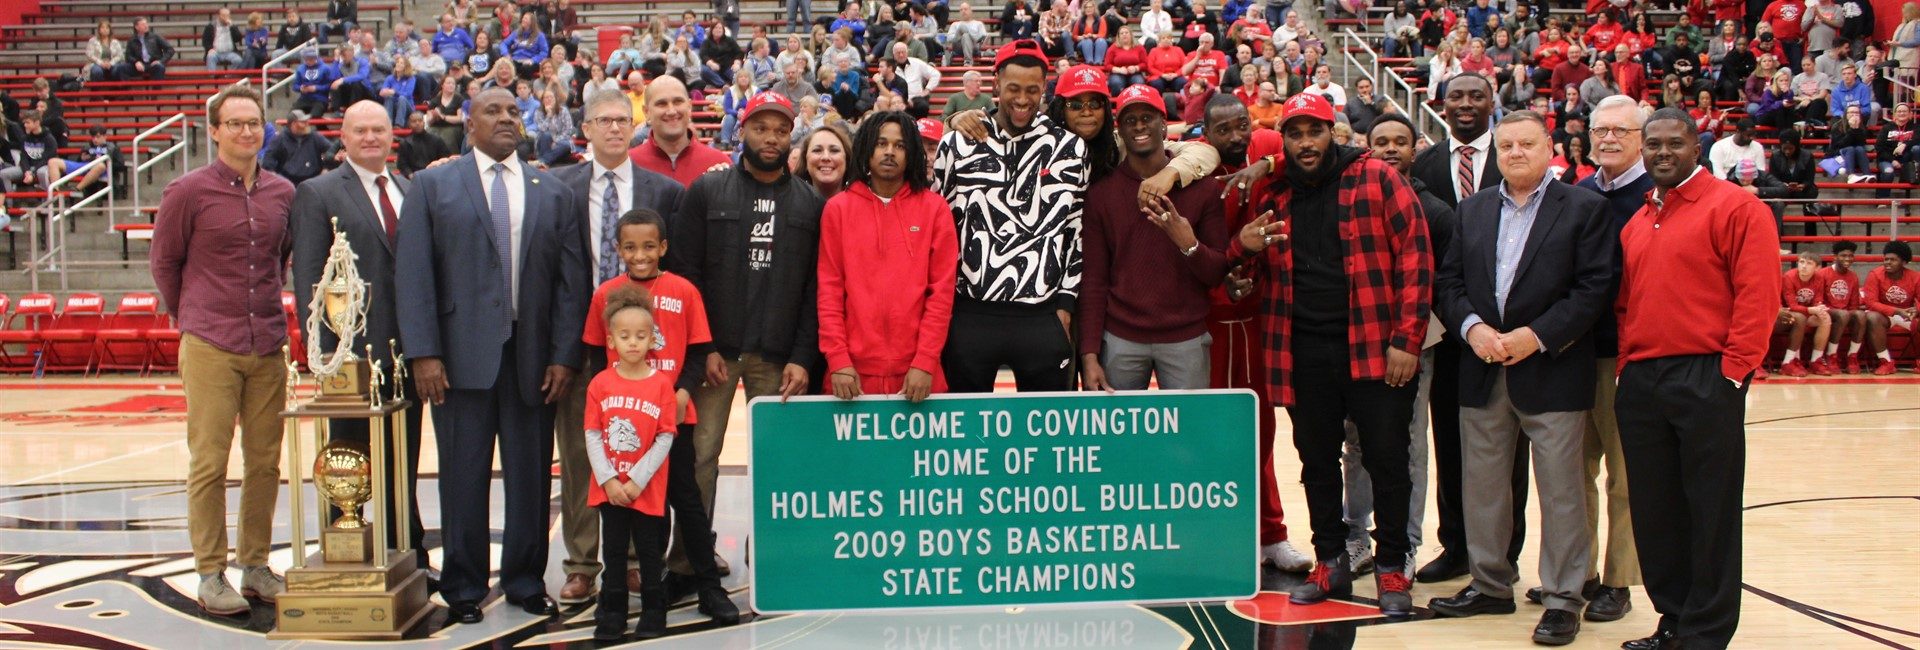 2009 State Champions